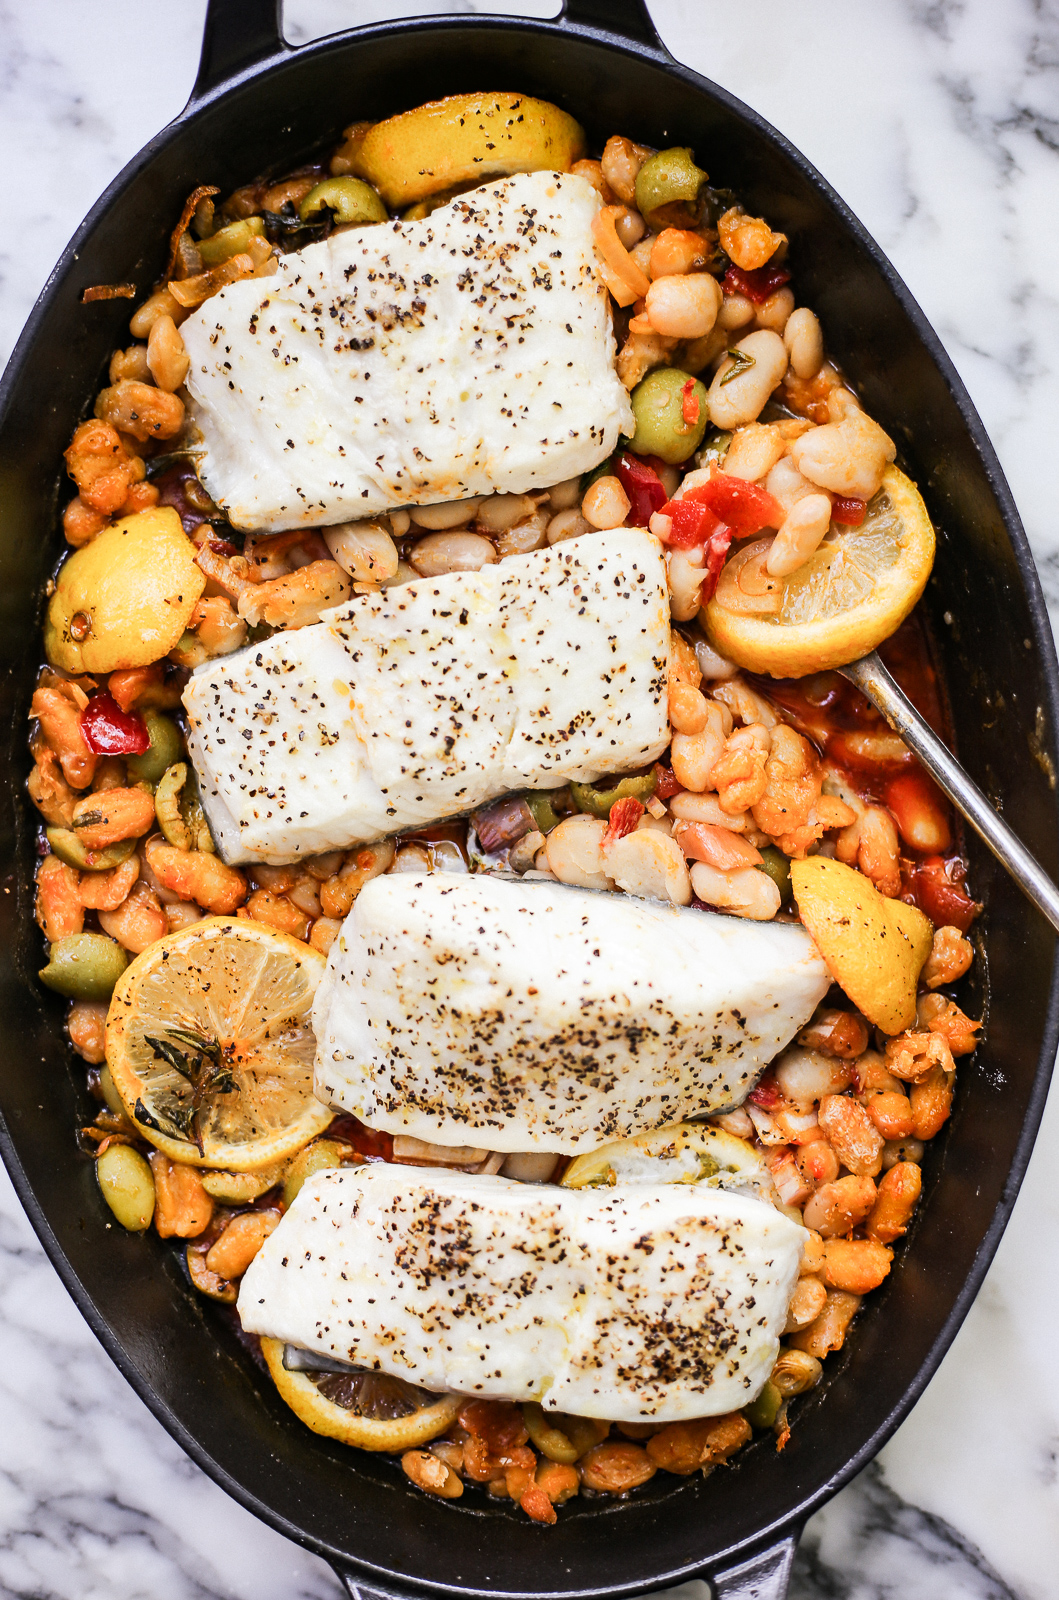 Roast Fish With White Beans And Calabrian Chiles - The Defined Dish